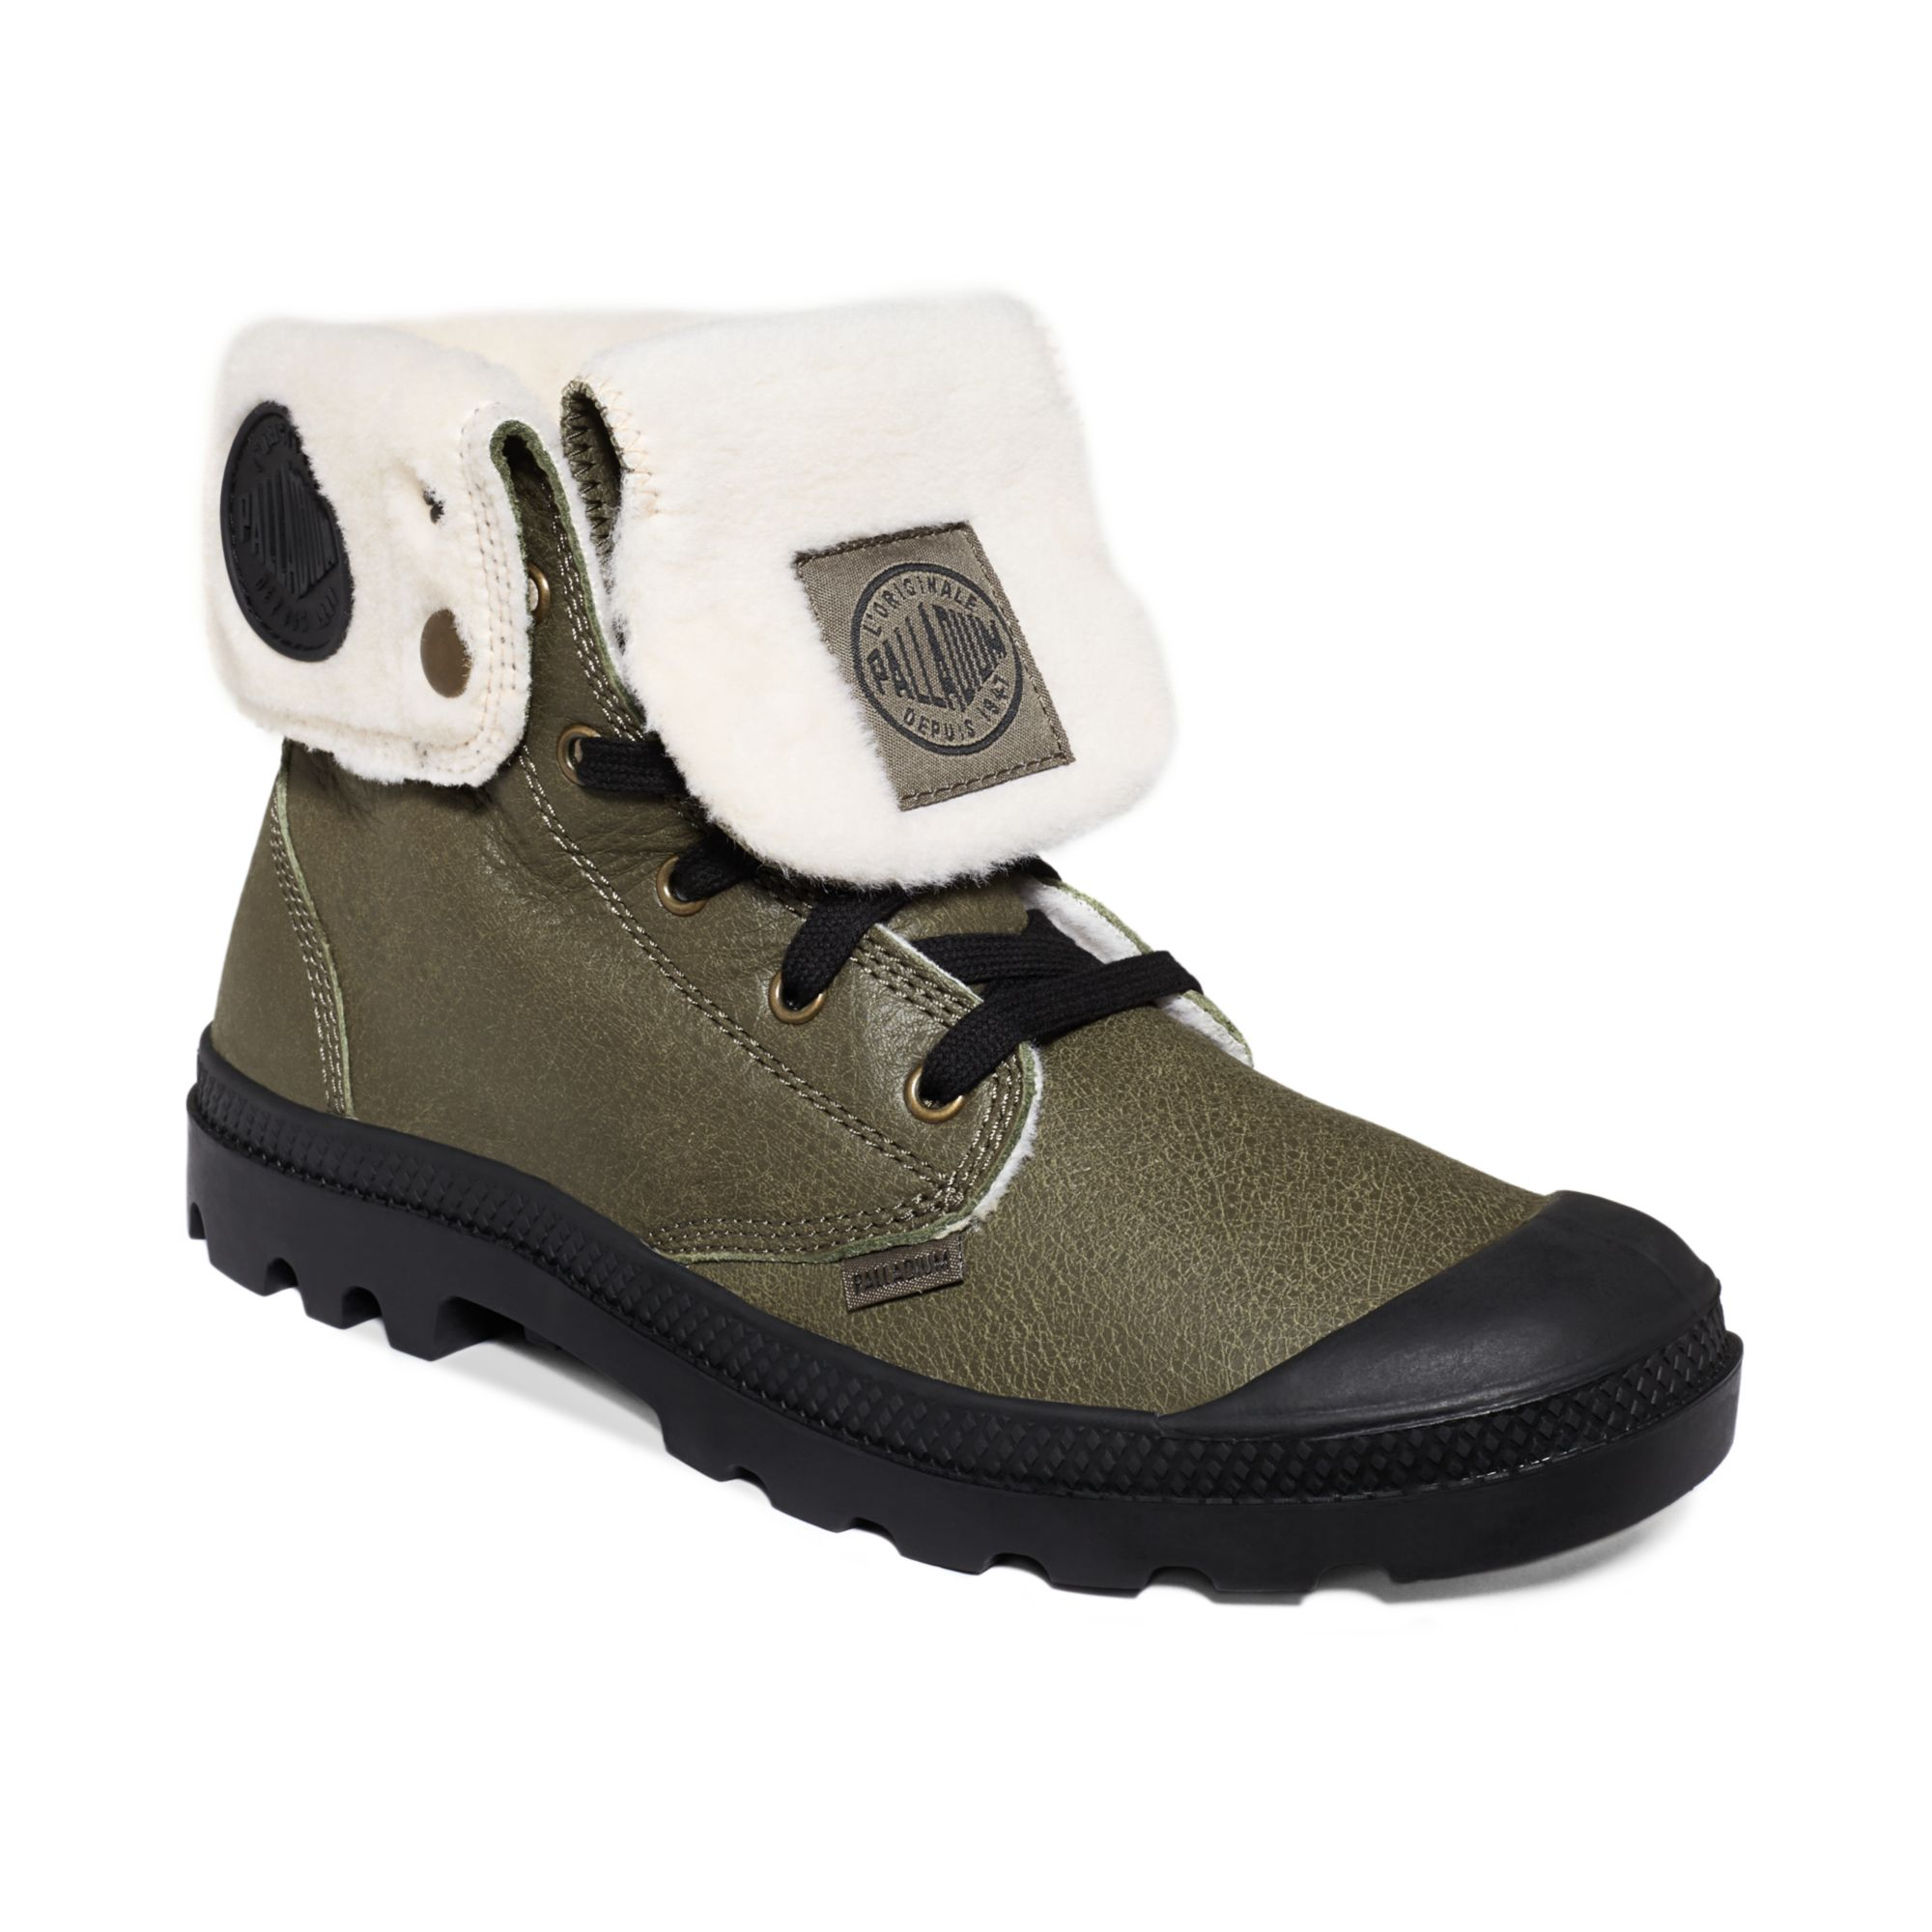 Palladium Baggy Leather S Wool Boots in